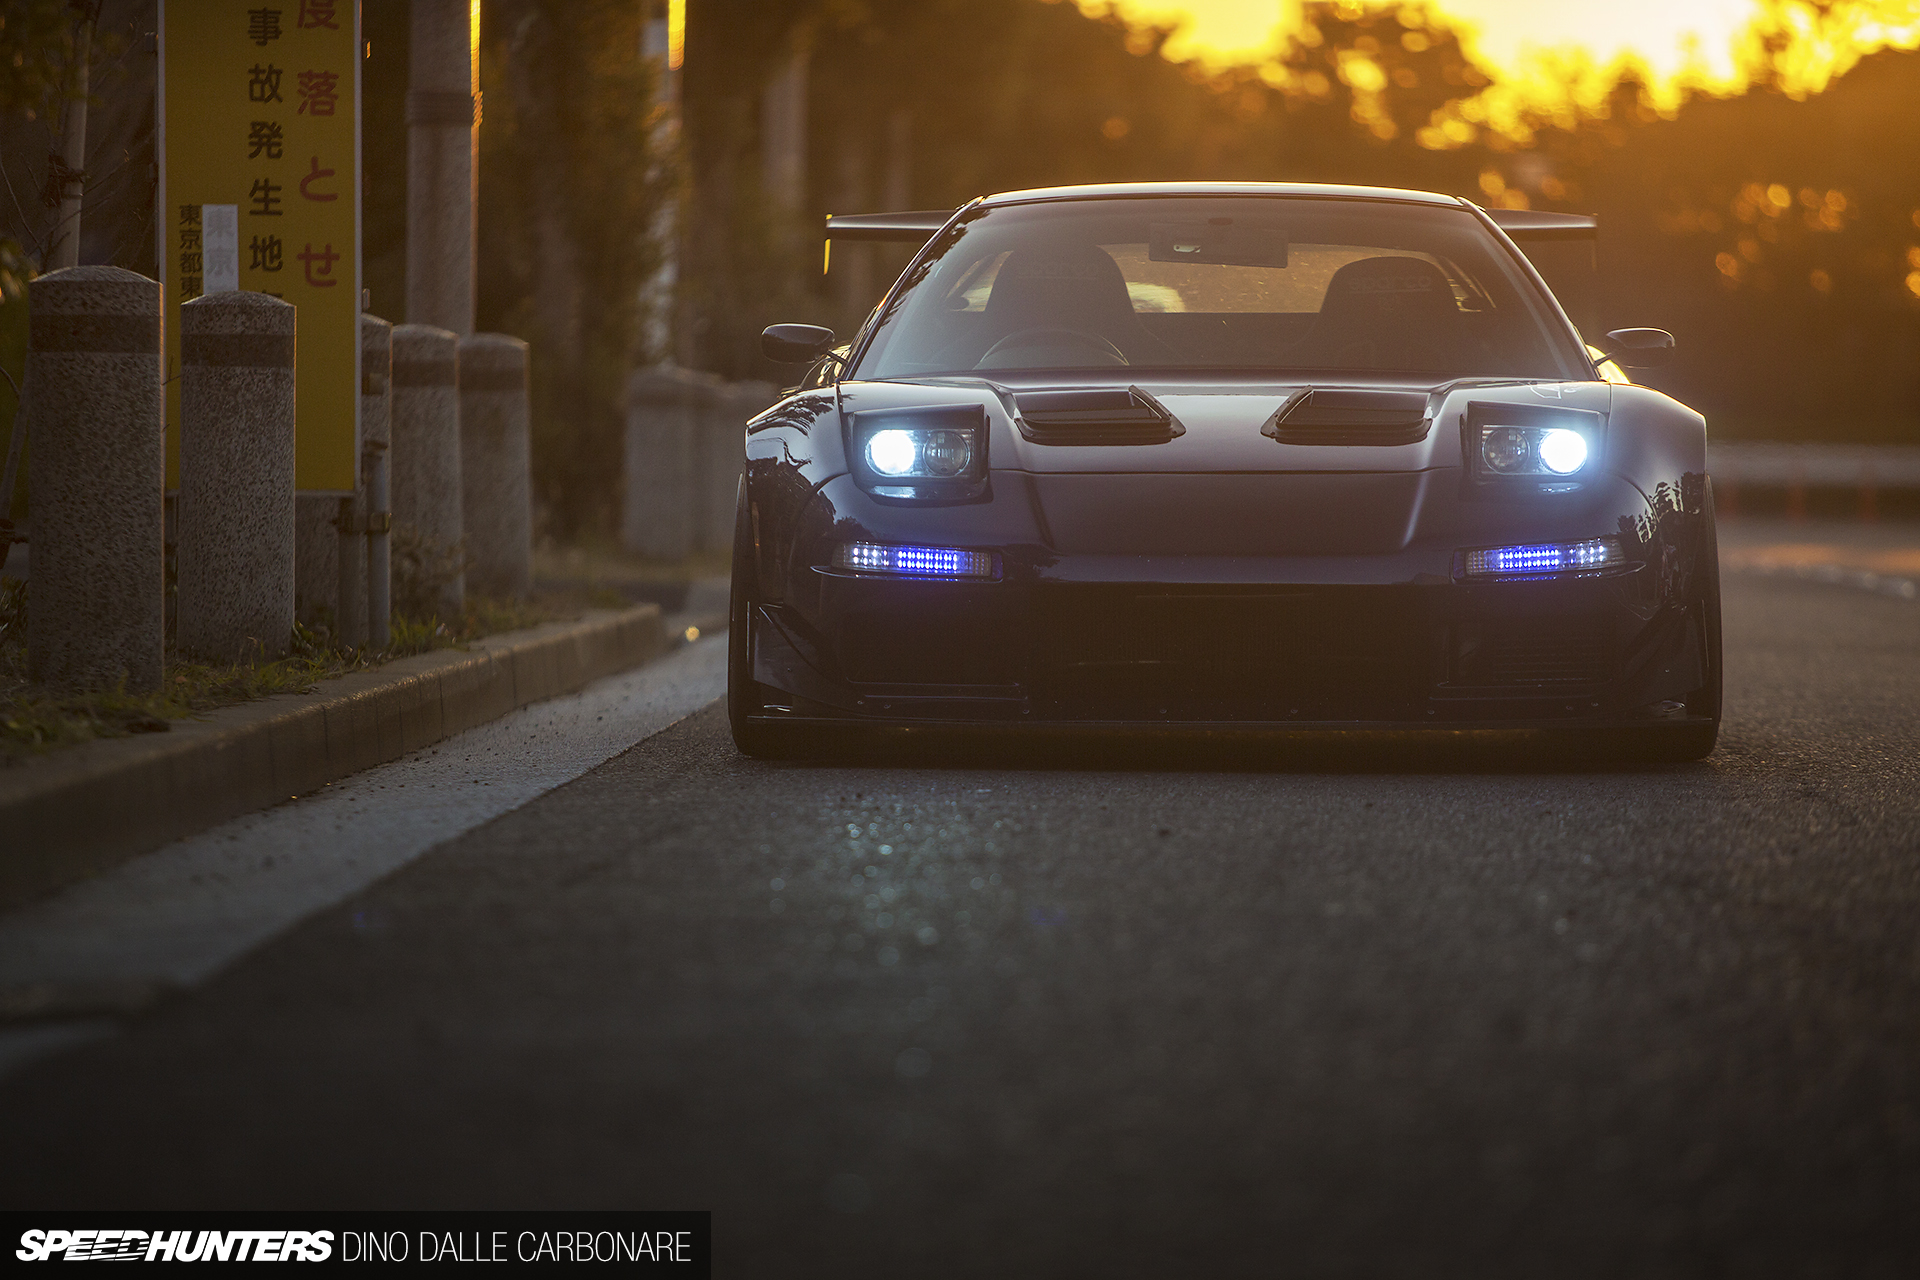 Muscle Car Background Wallpaper Perfecting Perfection The Advance Nsx Speedhunters